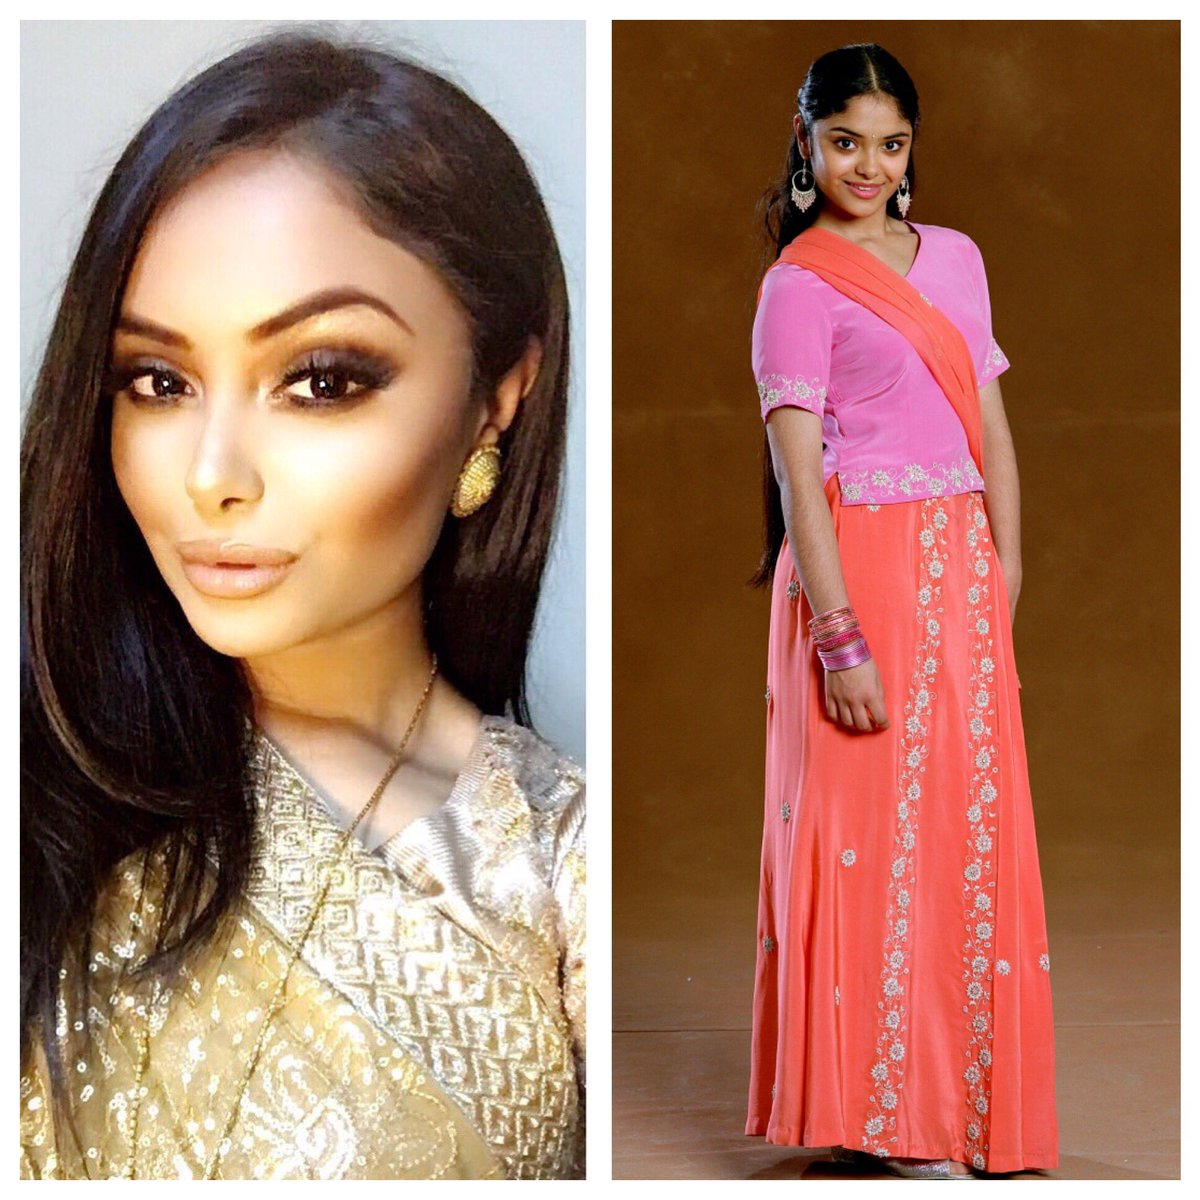 Harry potter universe on twitter february 12 happy birthday harry potter universe on twitter february 12 happy birthday afshan azad afshanazad she played padma patil in the harrypotter films thecheapjerseys Choice Image